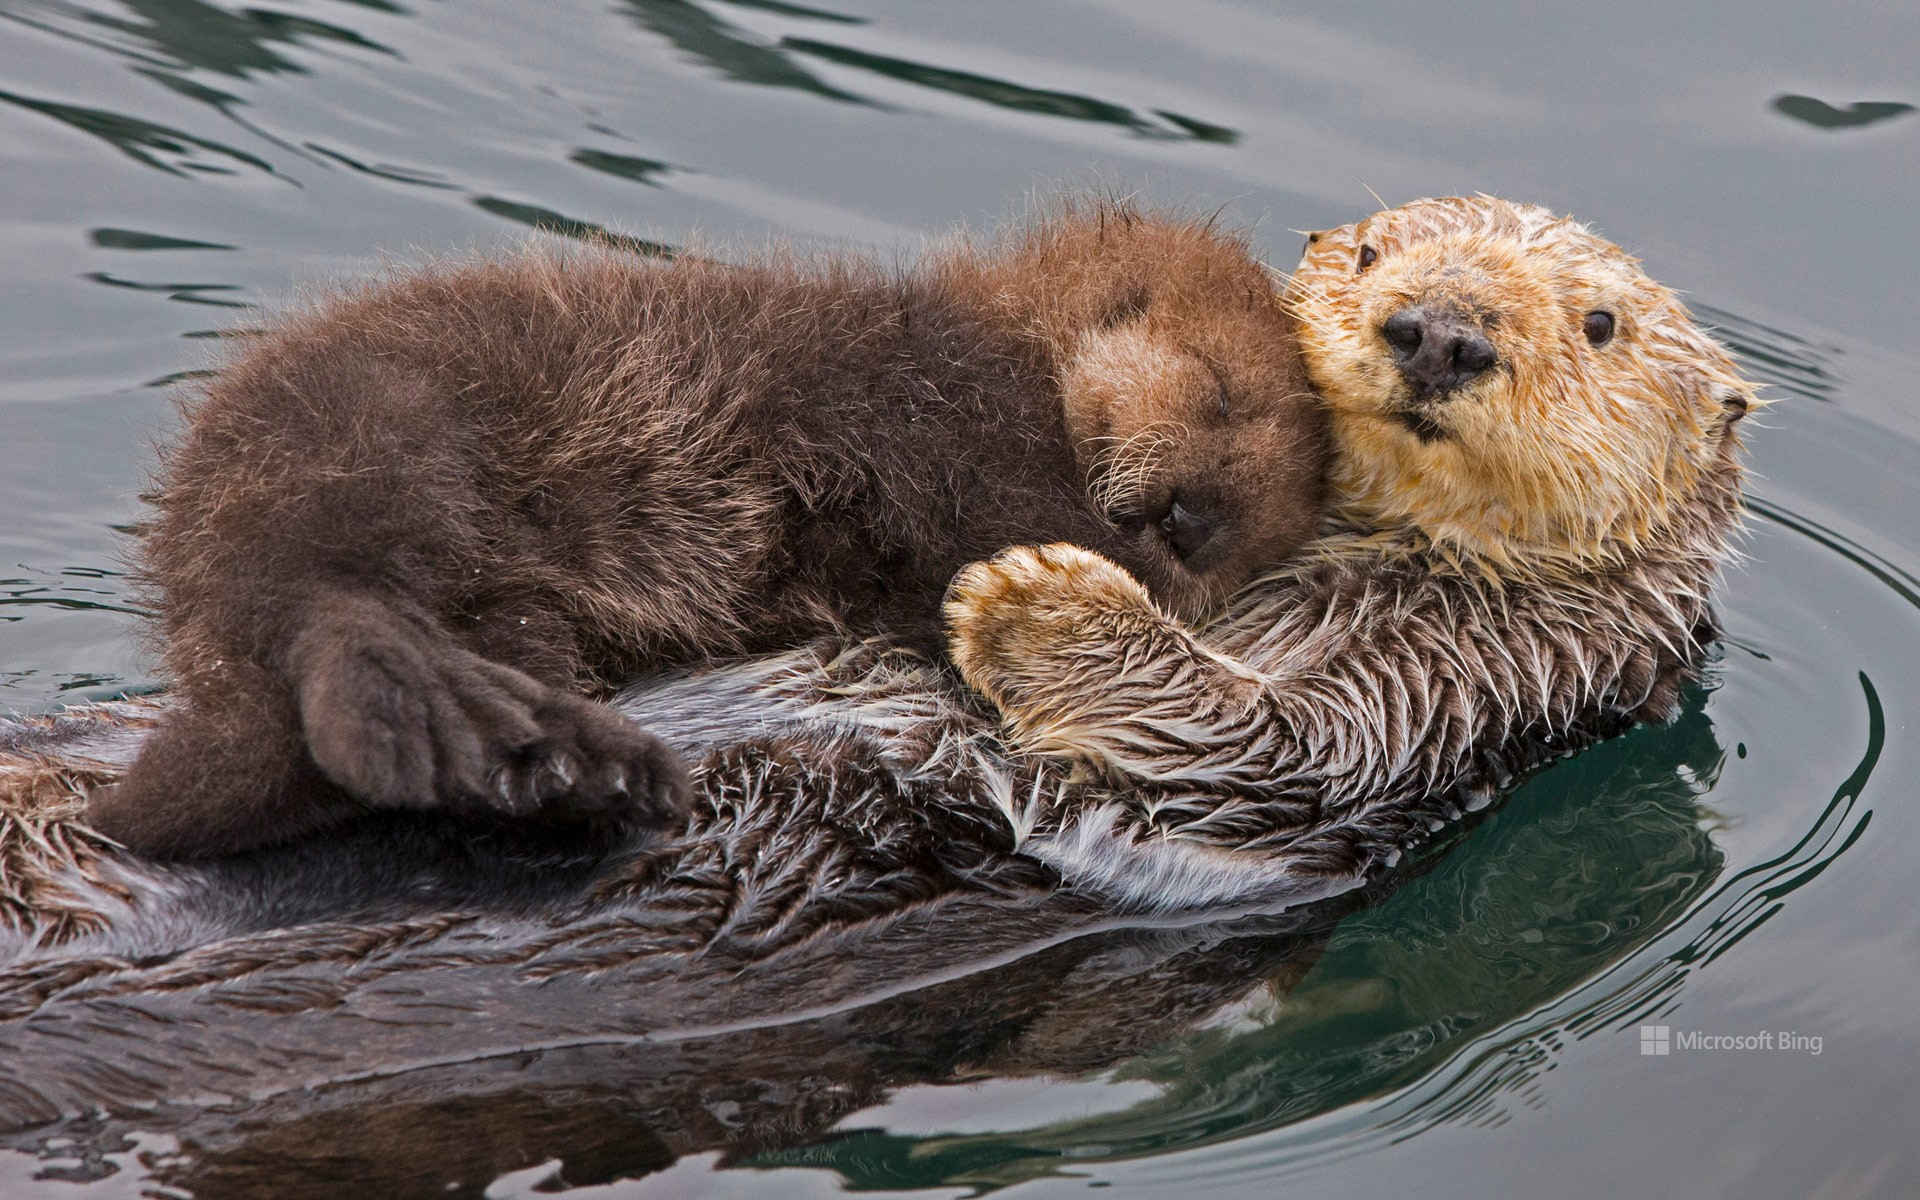 Sea otter mother and pup, Monterey Bay, California, USA